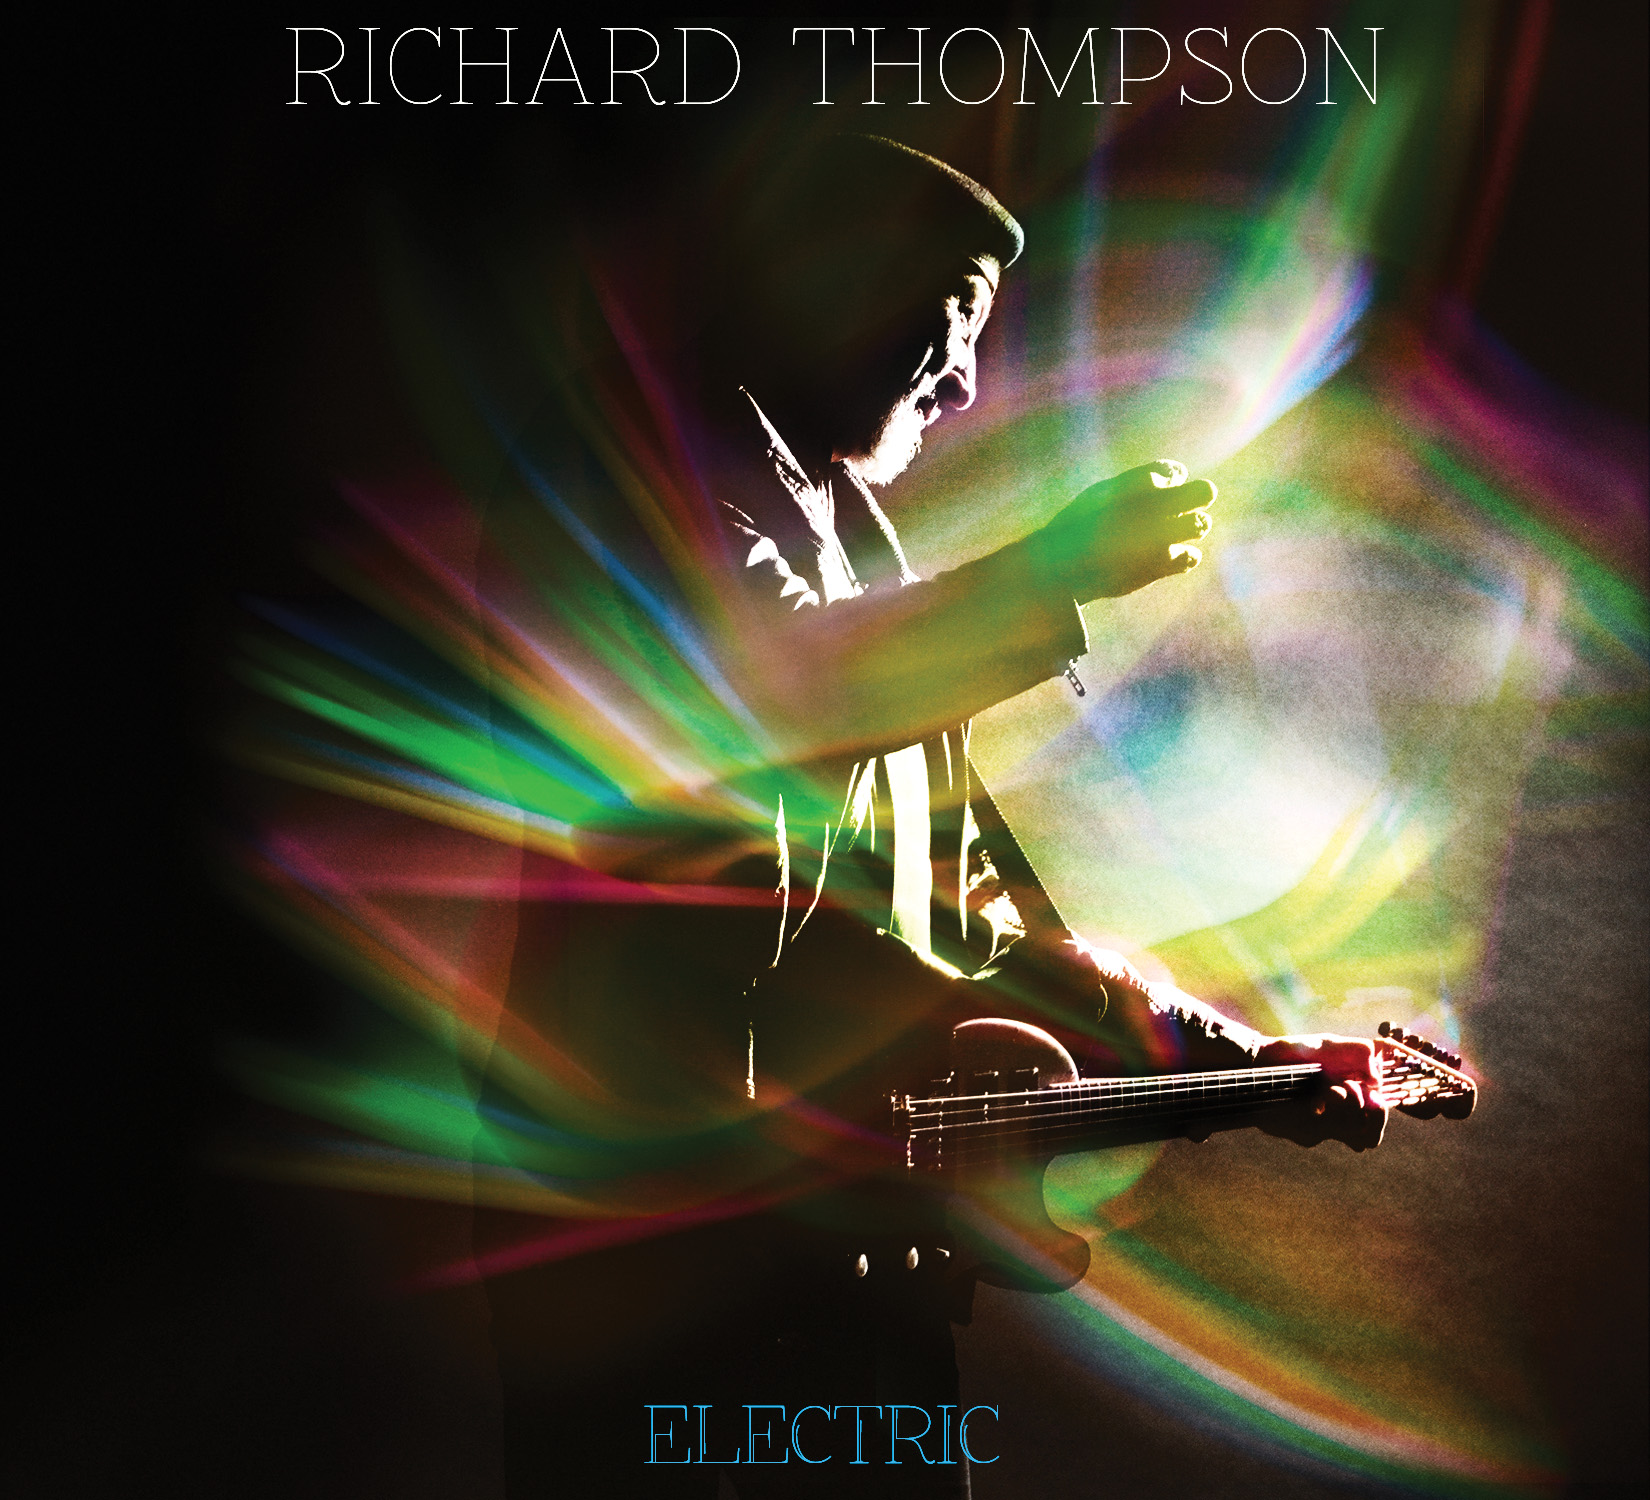 RichardThompson-PhysicalCover.jpg